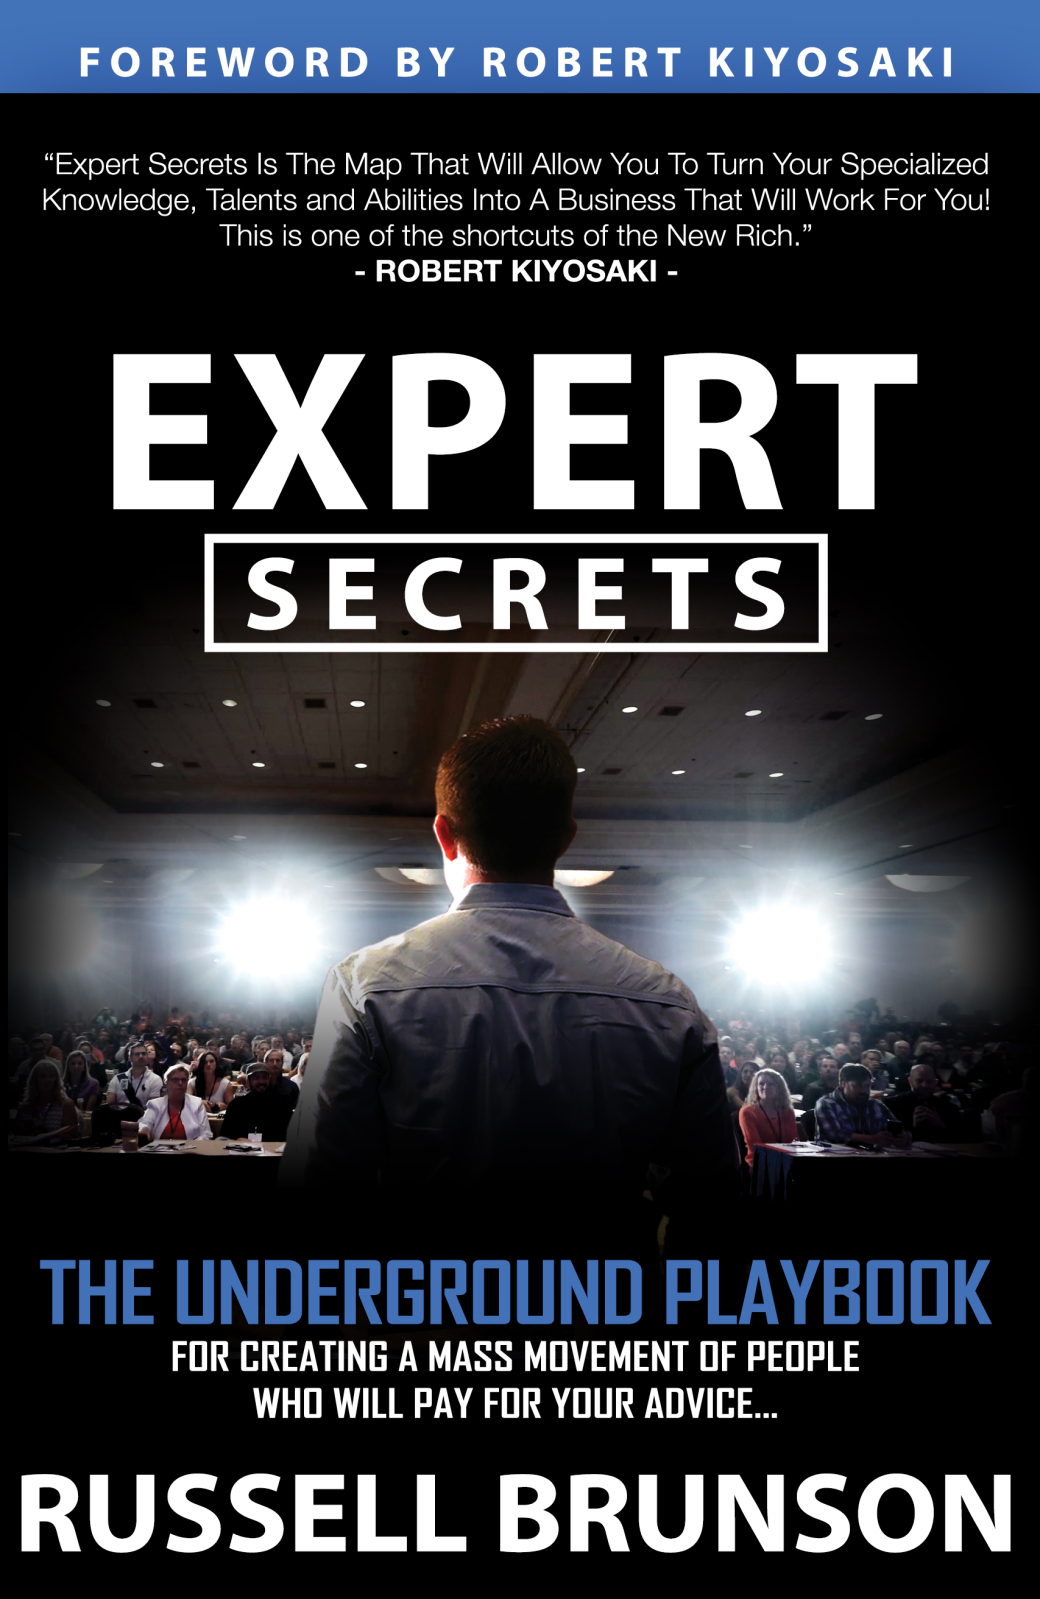 expert secrets book cover